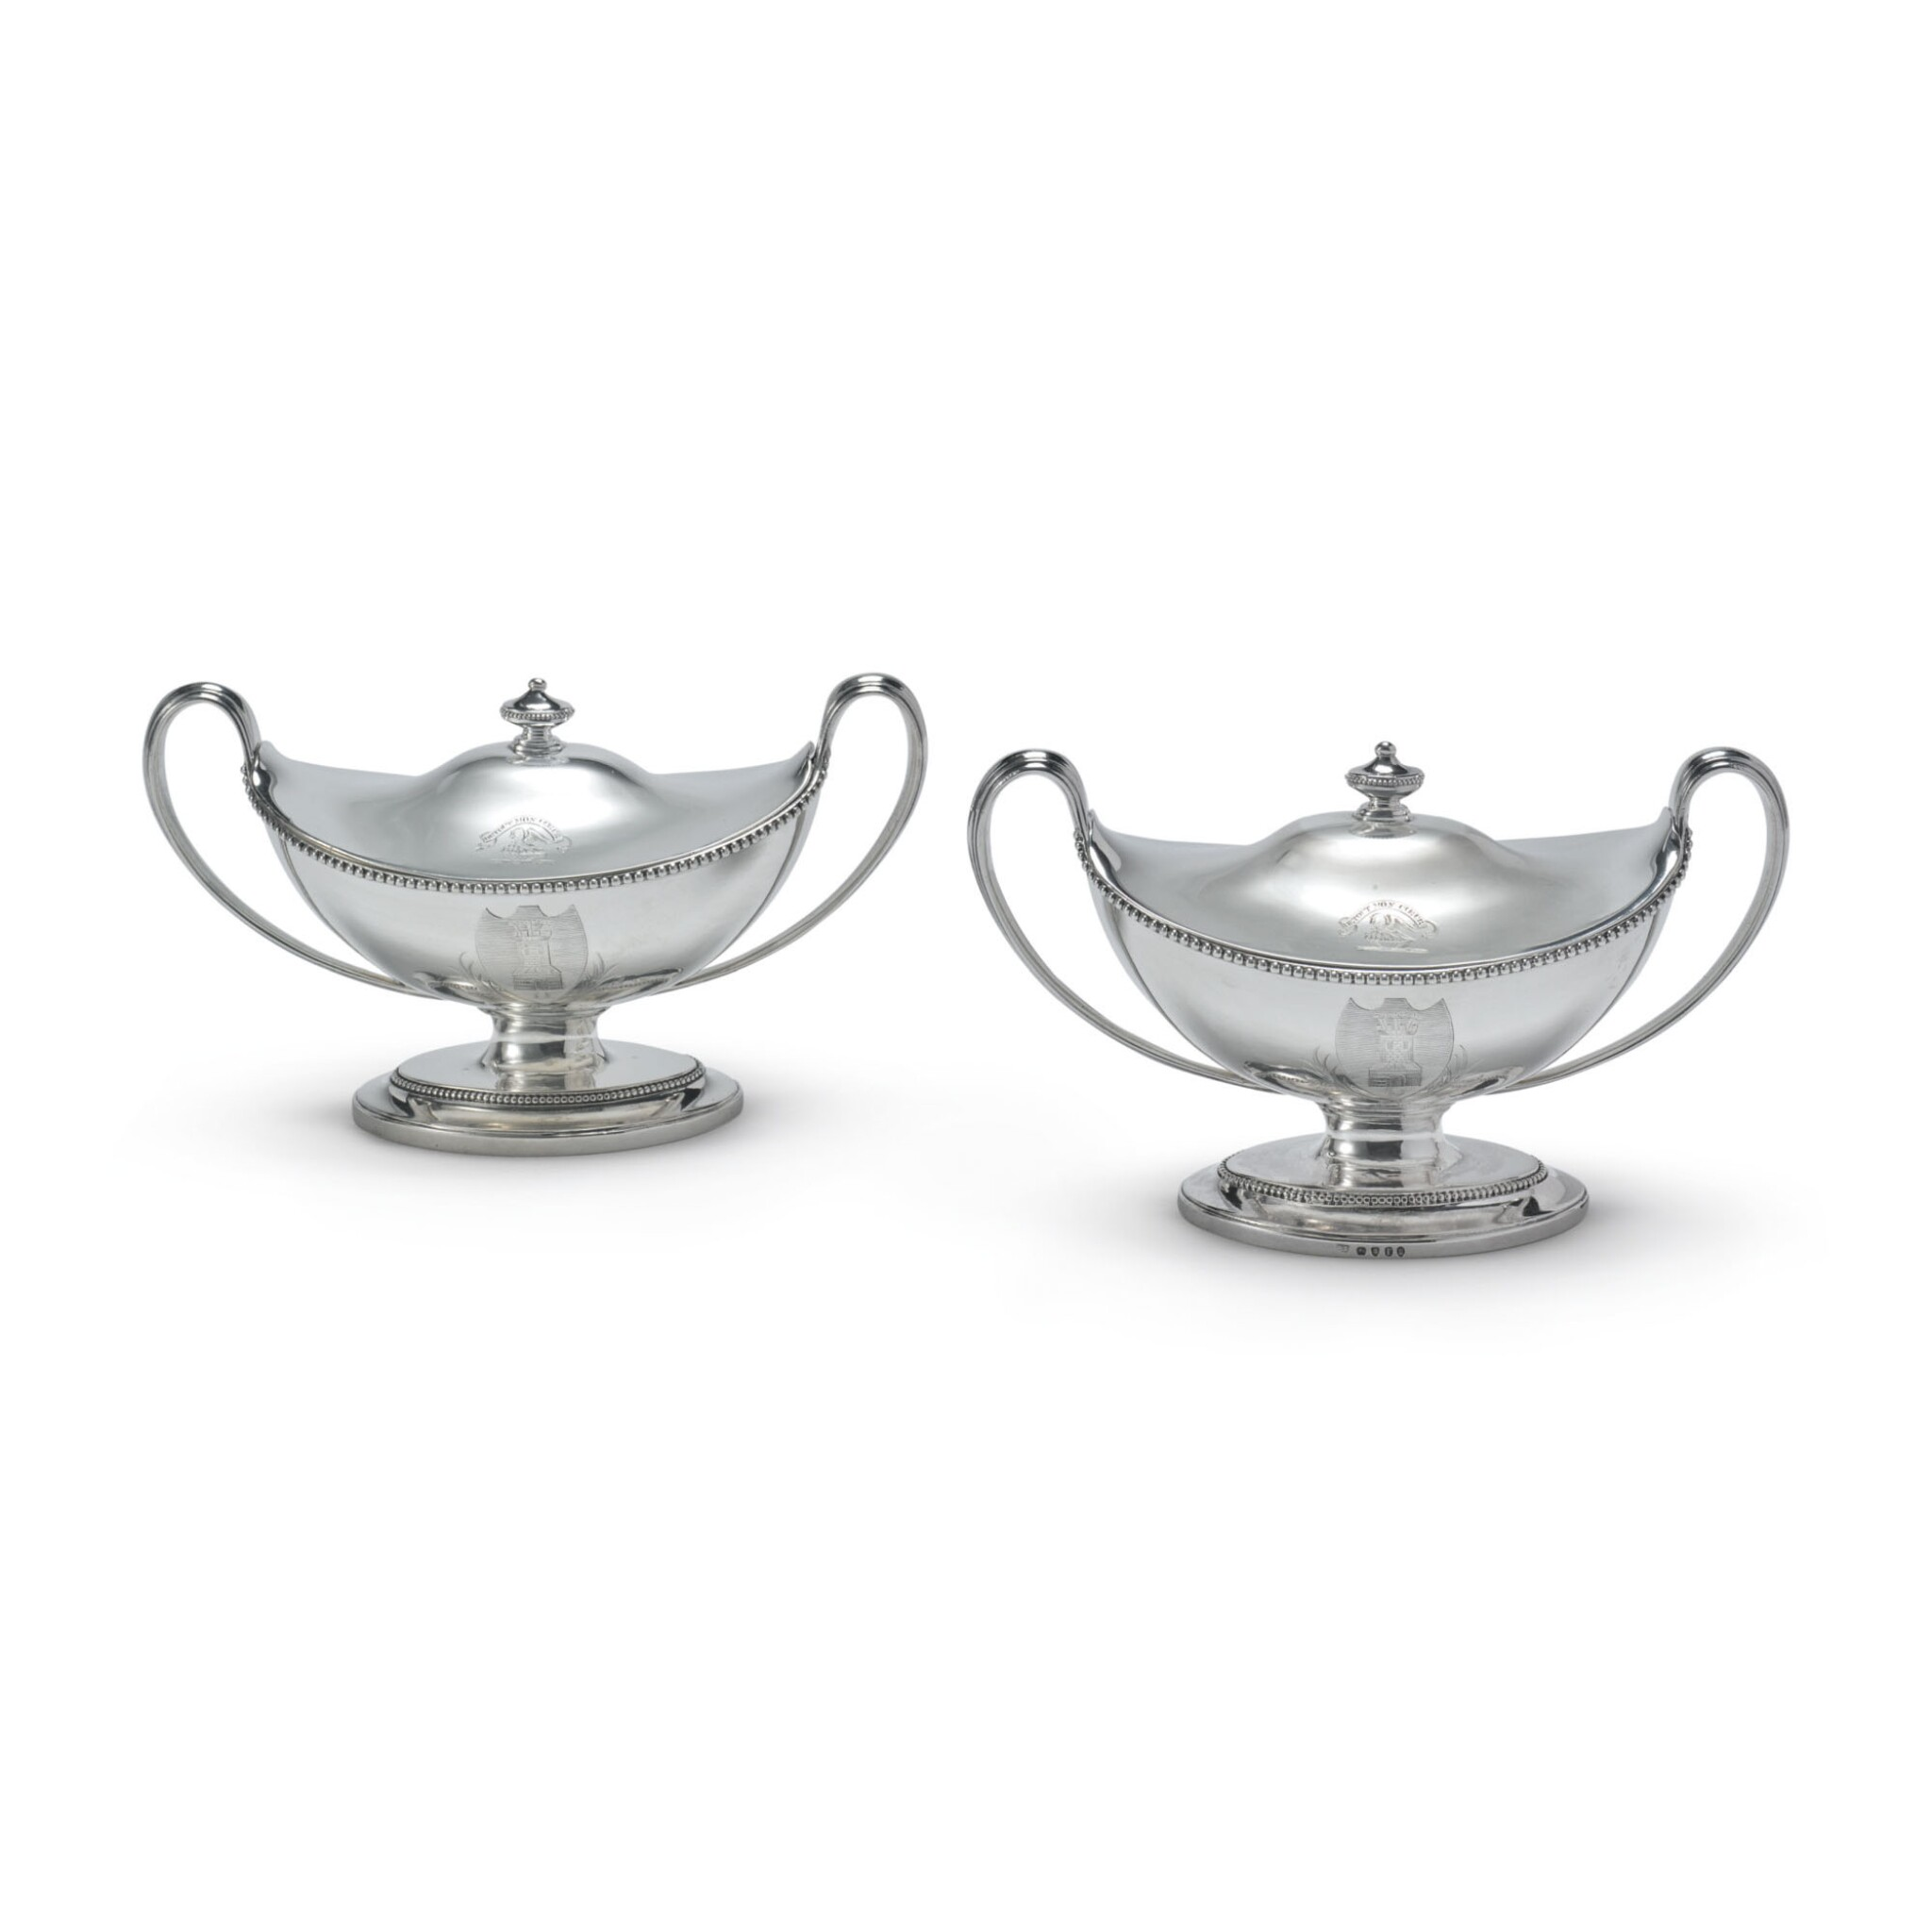 A PAIR OF GEORGE III SILVER SAUCE TUREENS AND COVERS, JAMES YOUNG, LONDON, 1792